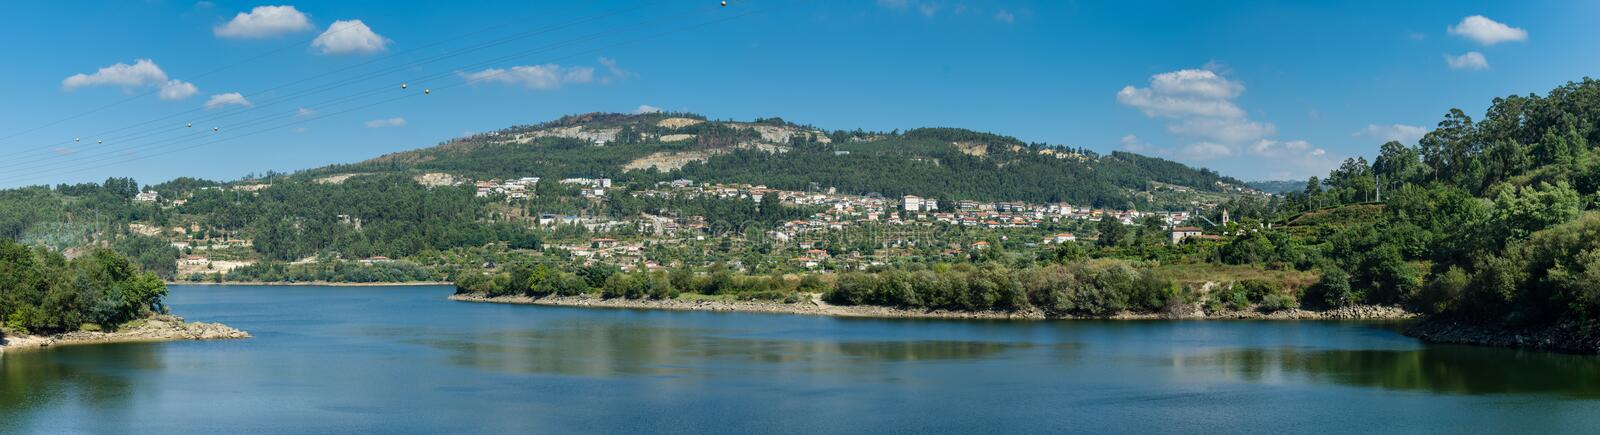 Douro Valley. Panoramic view of Douro Valley. Portugal's port wine region. Point of interest in Portugal stock photos